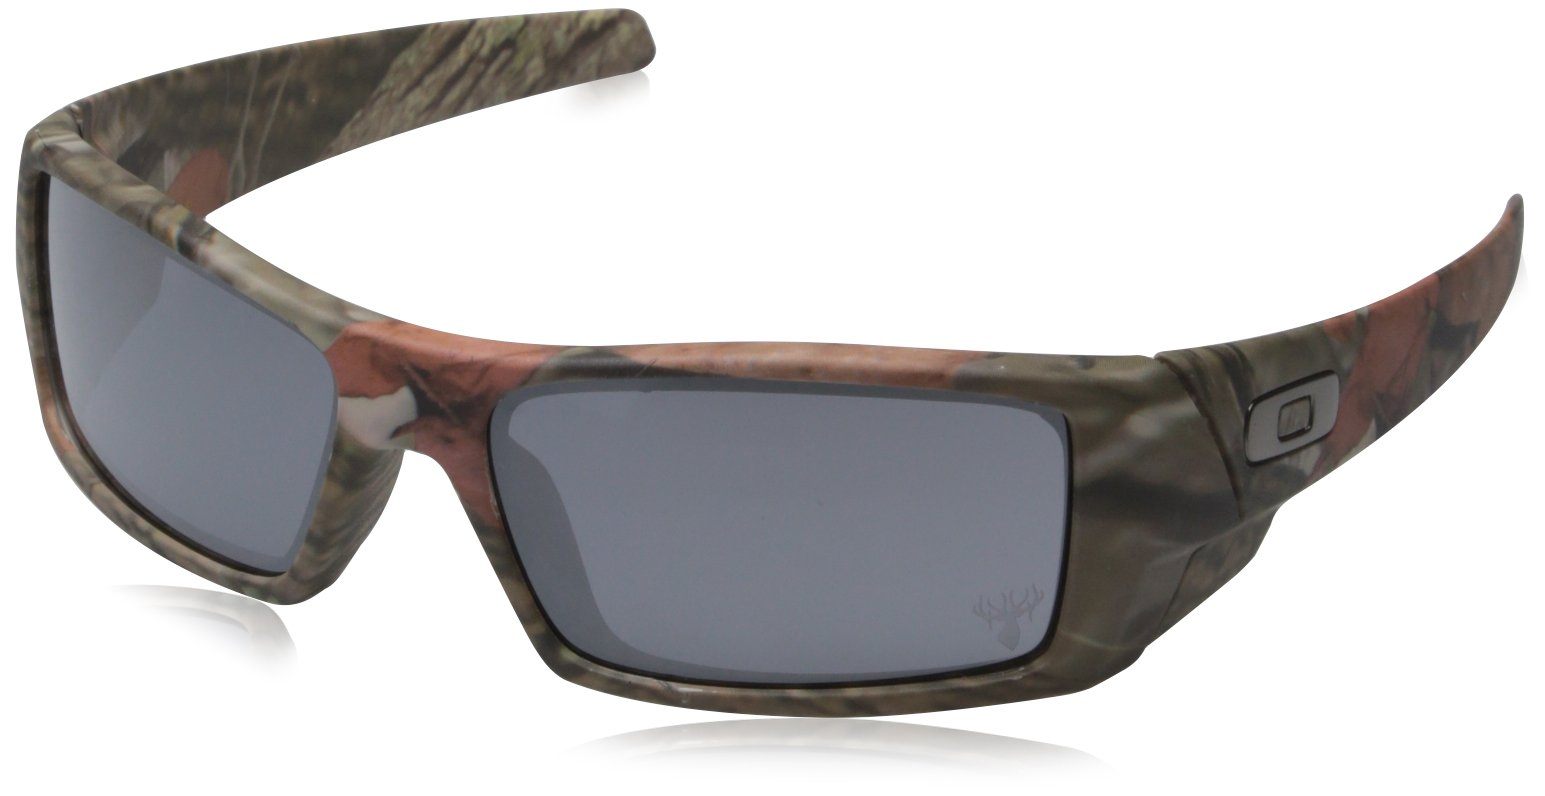 Oakley Men's OO9014 Gascan Sunglasses